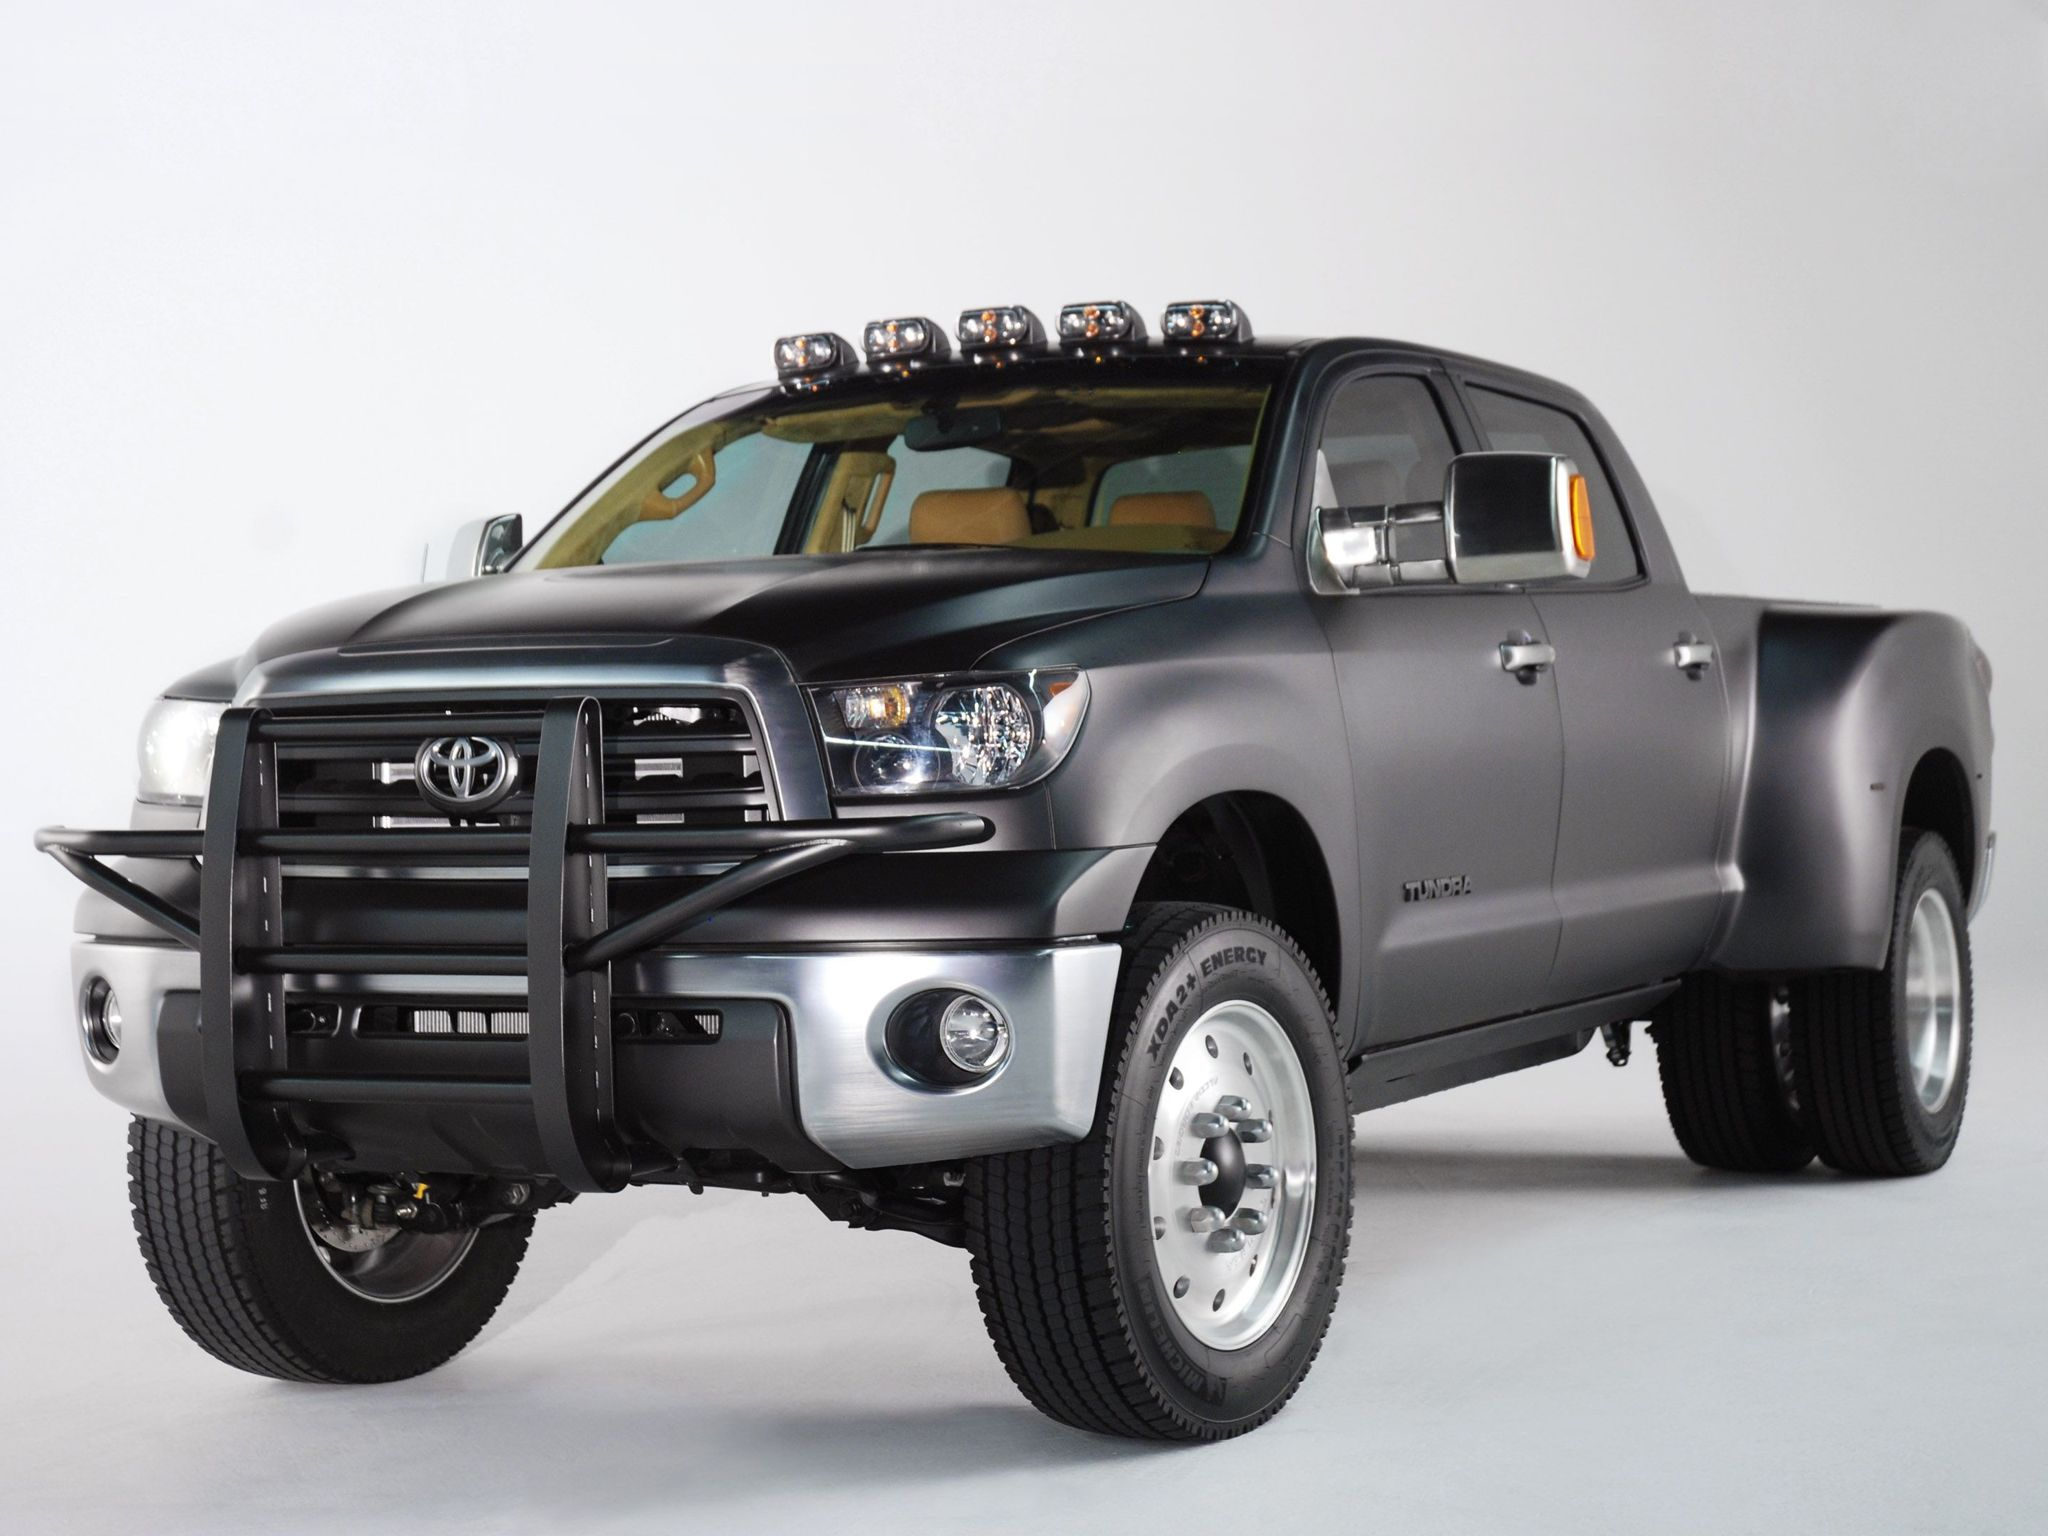 toyota tundra dually diesel concept the sexiest truck what i would own pinterest toyota. Black Bedroom Furniture Sets. Home Design Ideas